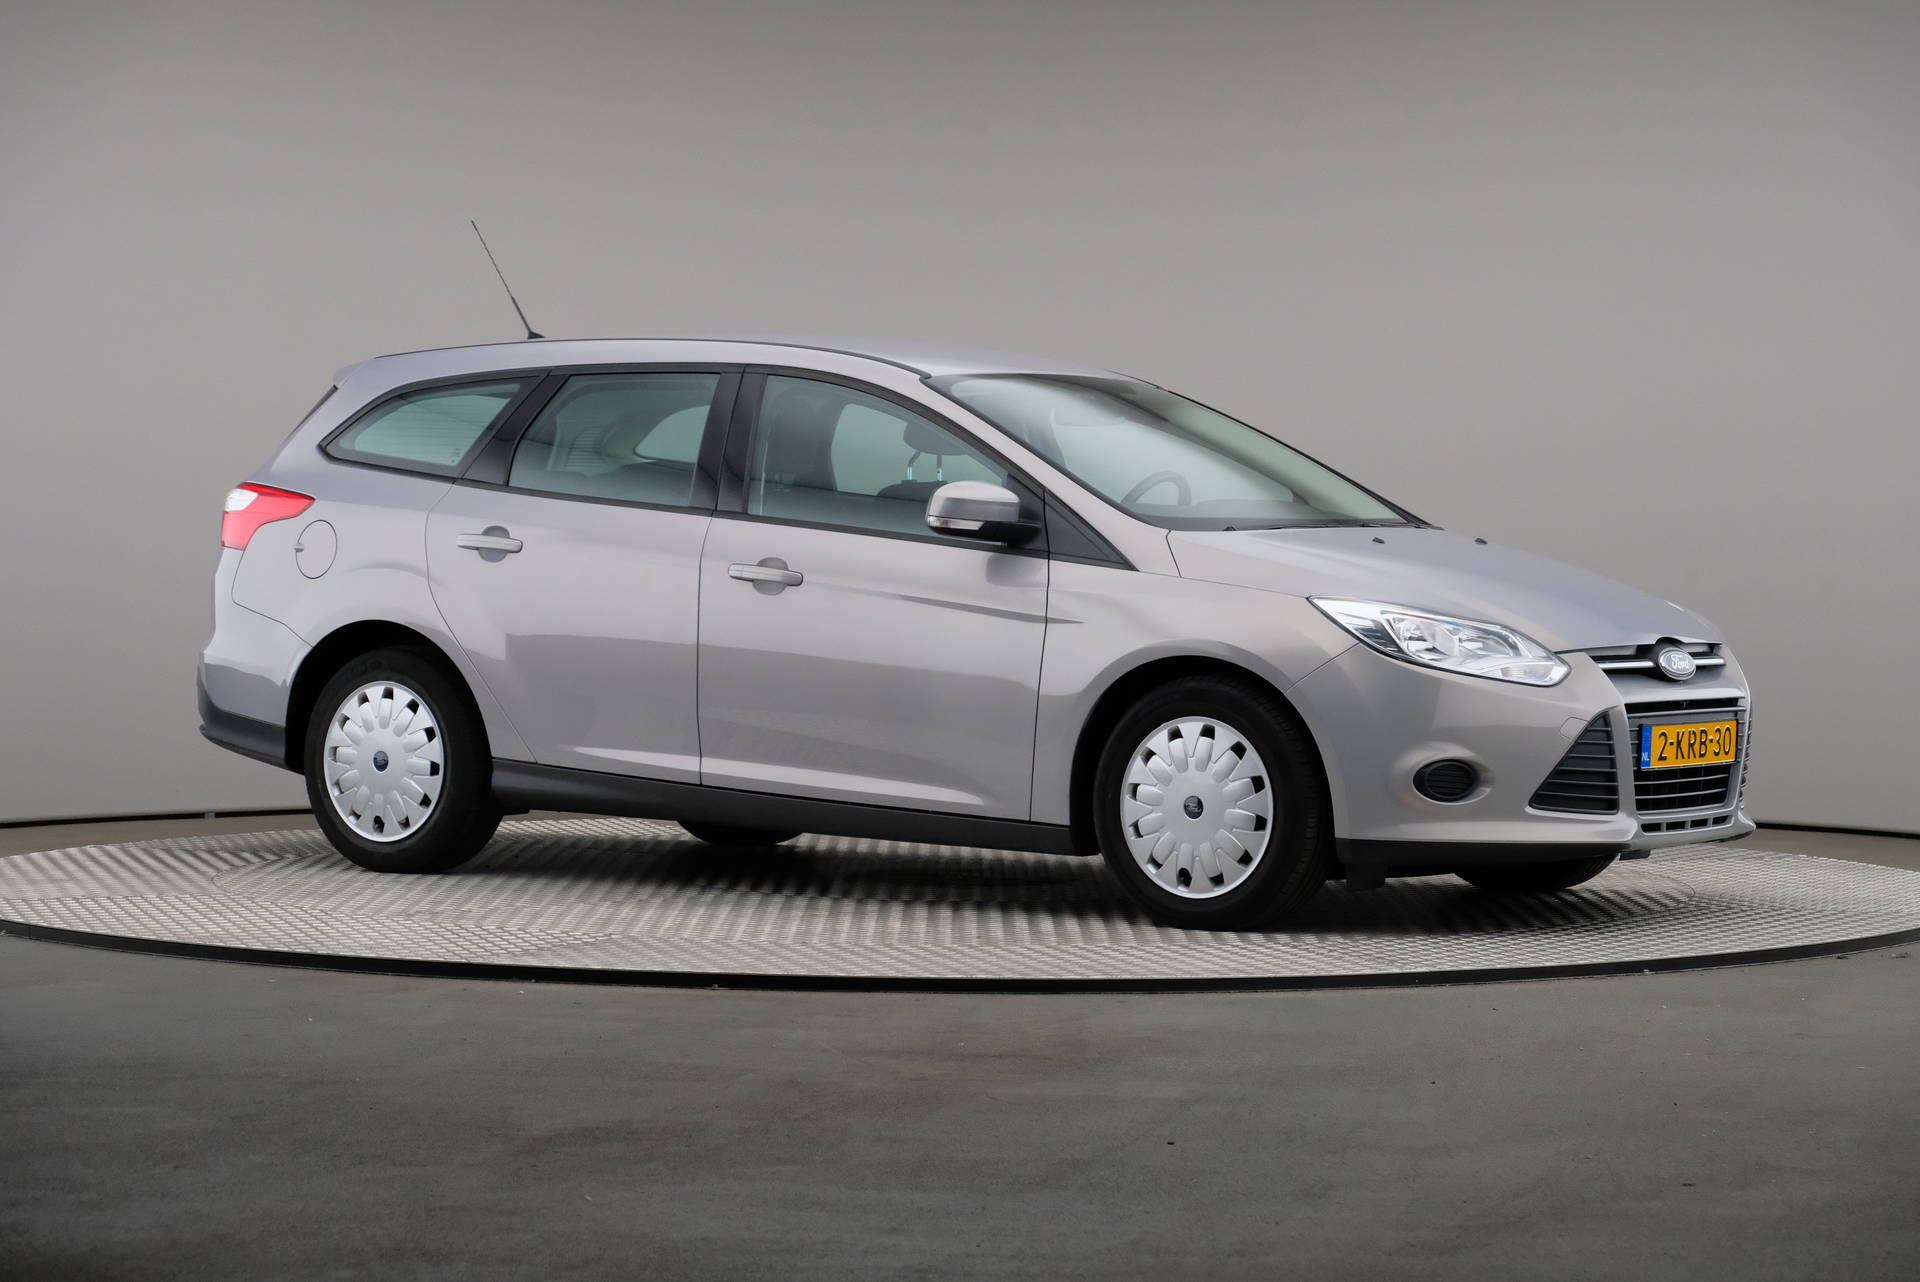 Ford Focus Wagon 1.6 TDCi ECOnetic Lease Trend, Navigatie, 360-image27